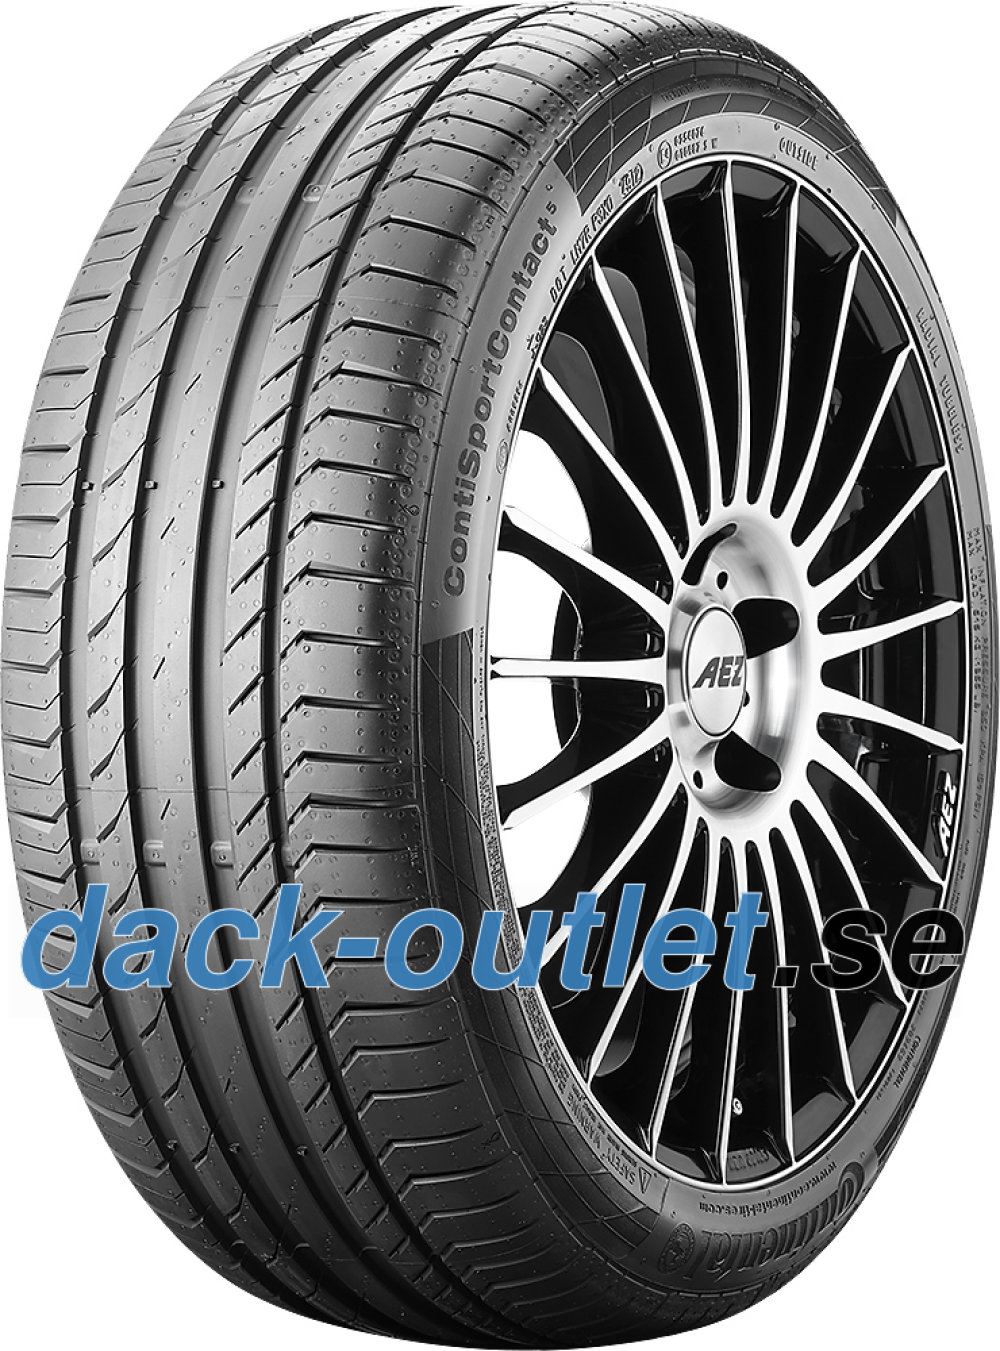 Continental ContiSportContact 5 SSR ( 225/40 R19 89W *, med fälgskydd, runflat )